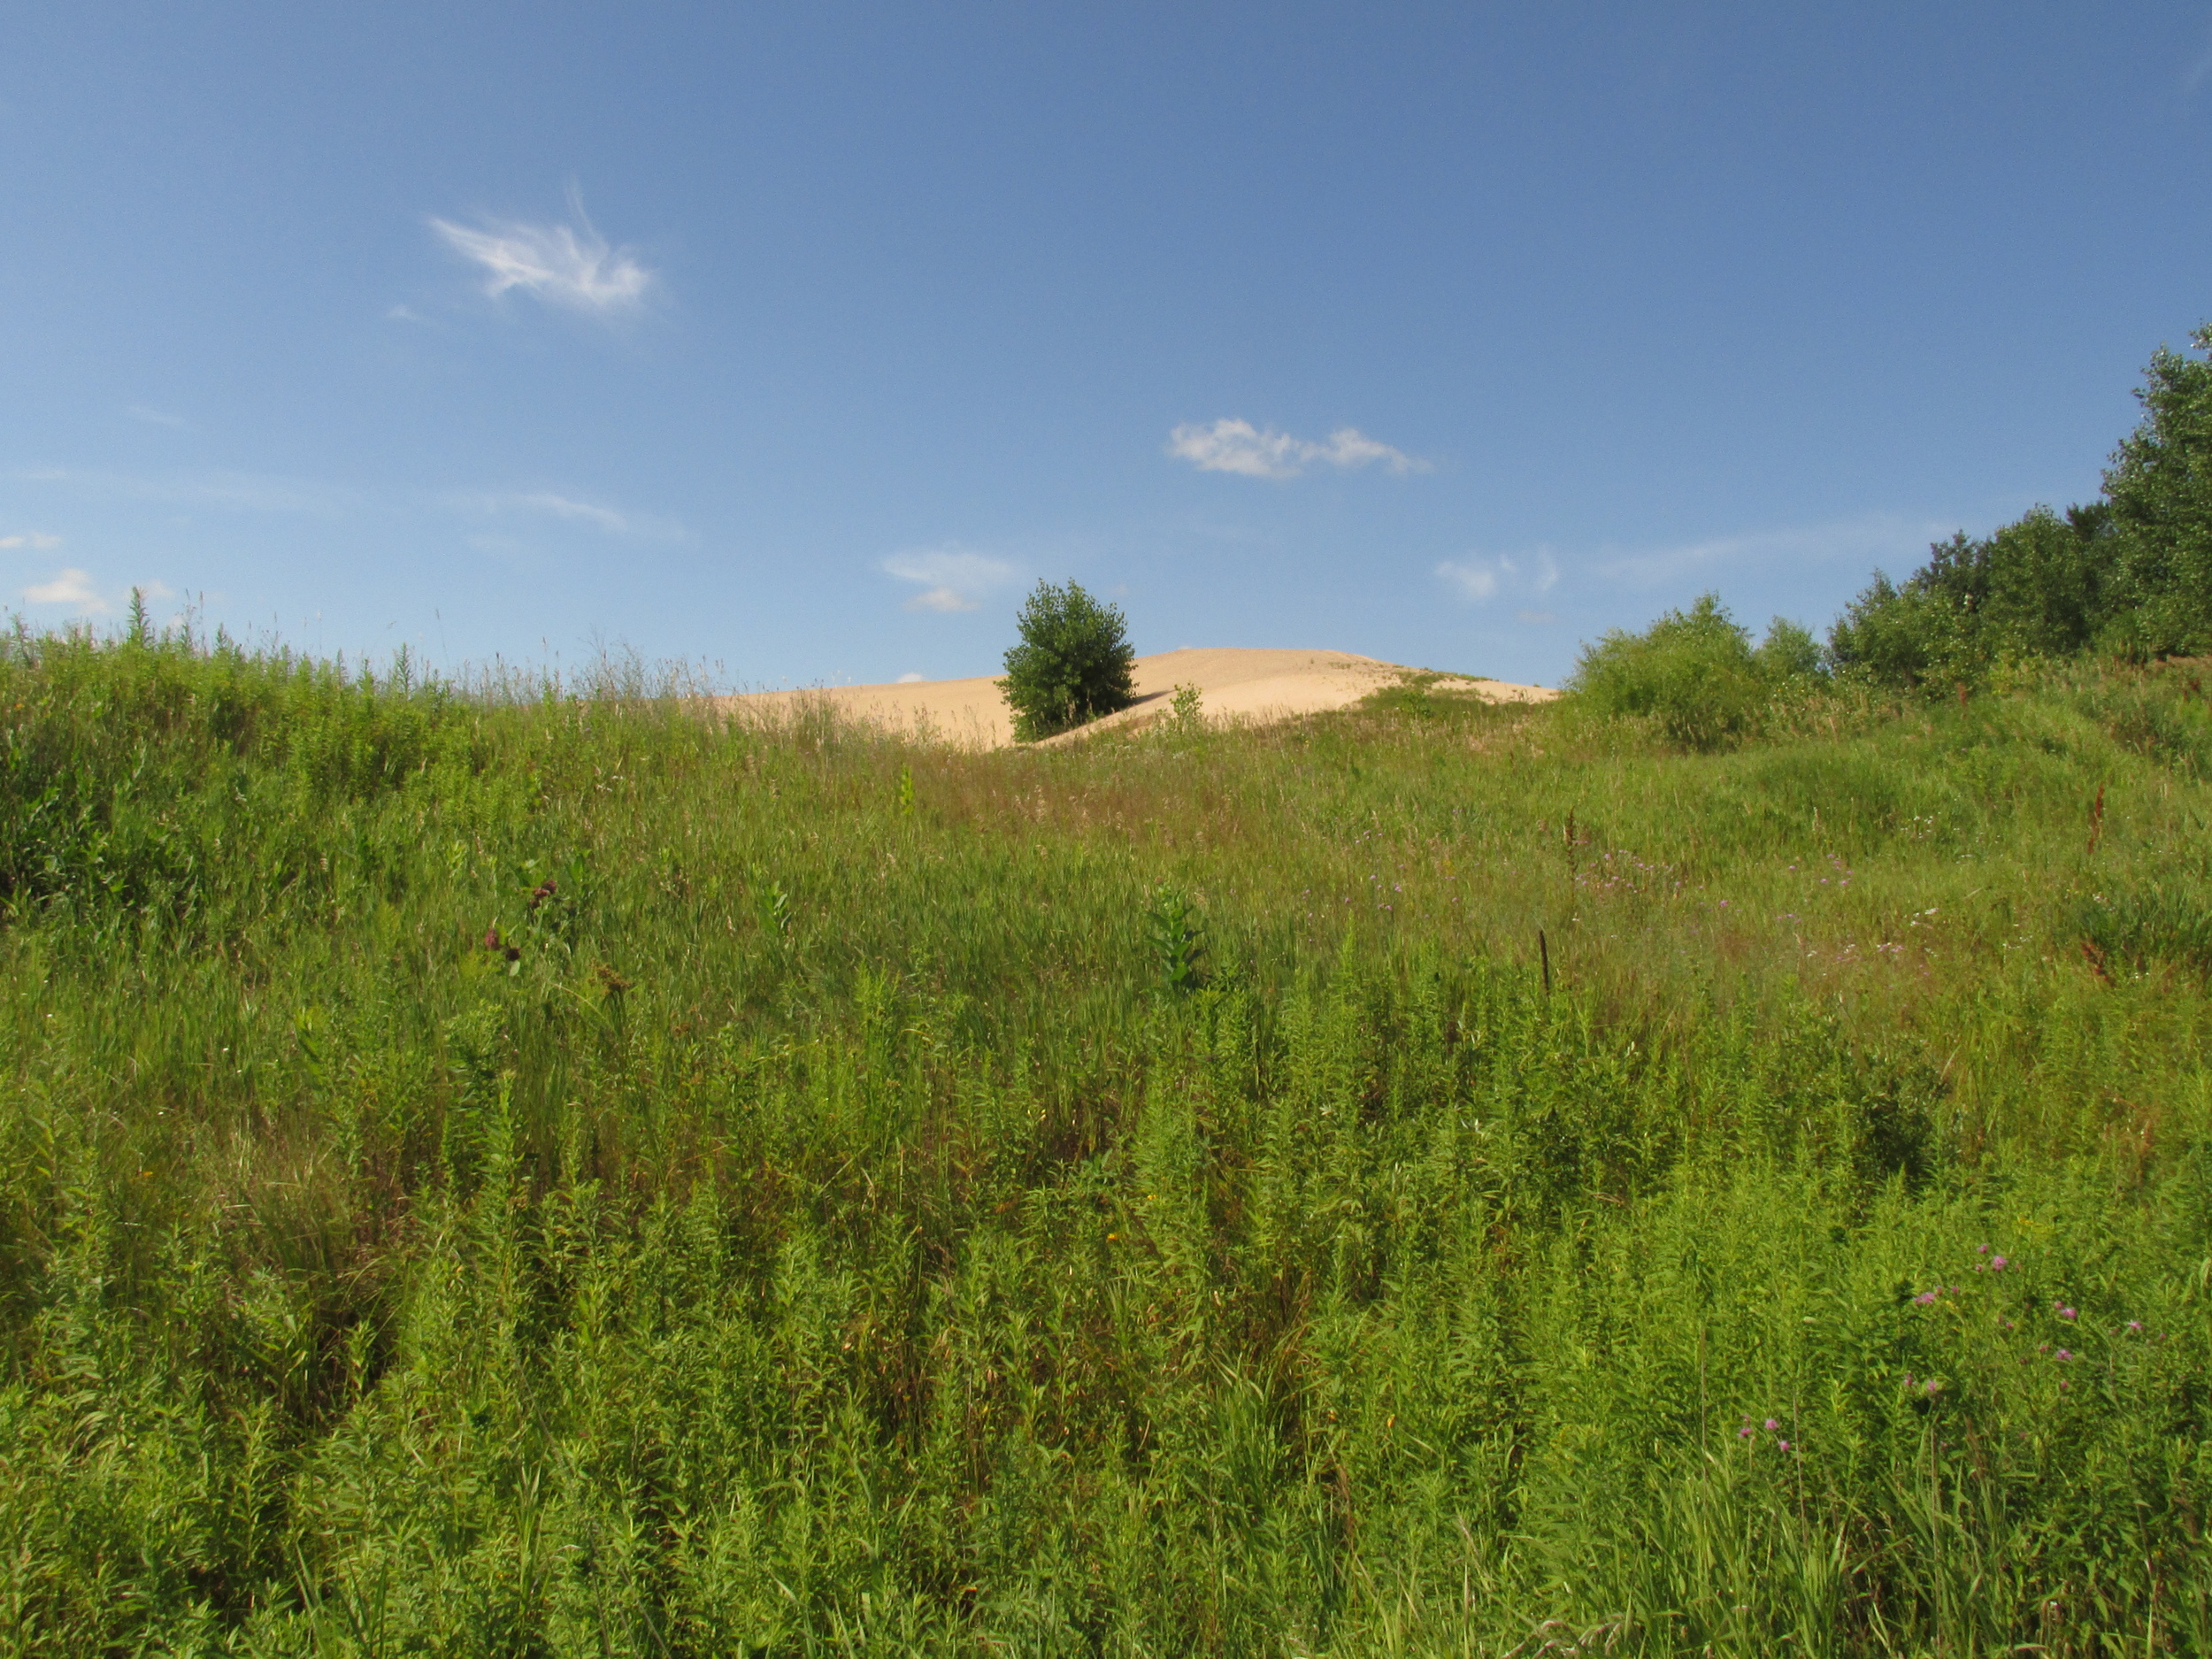 A view of the sand pile from the road.